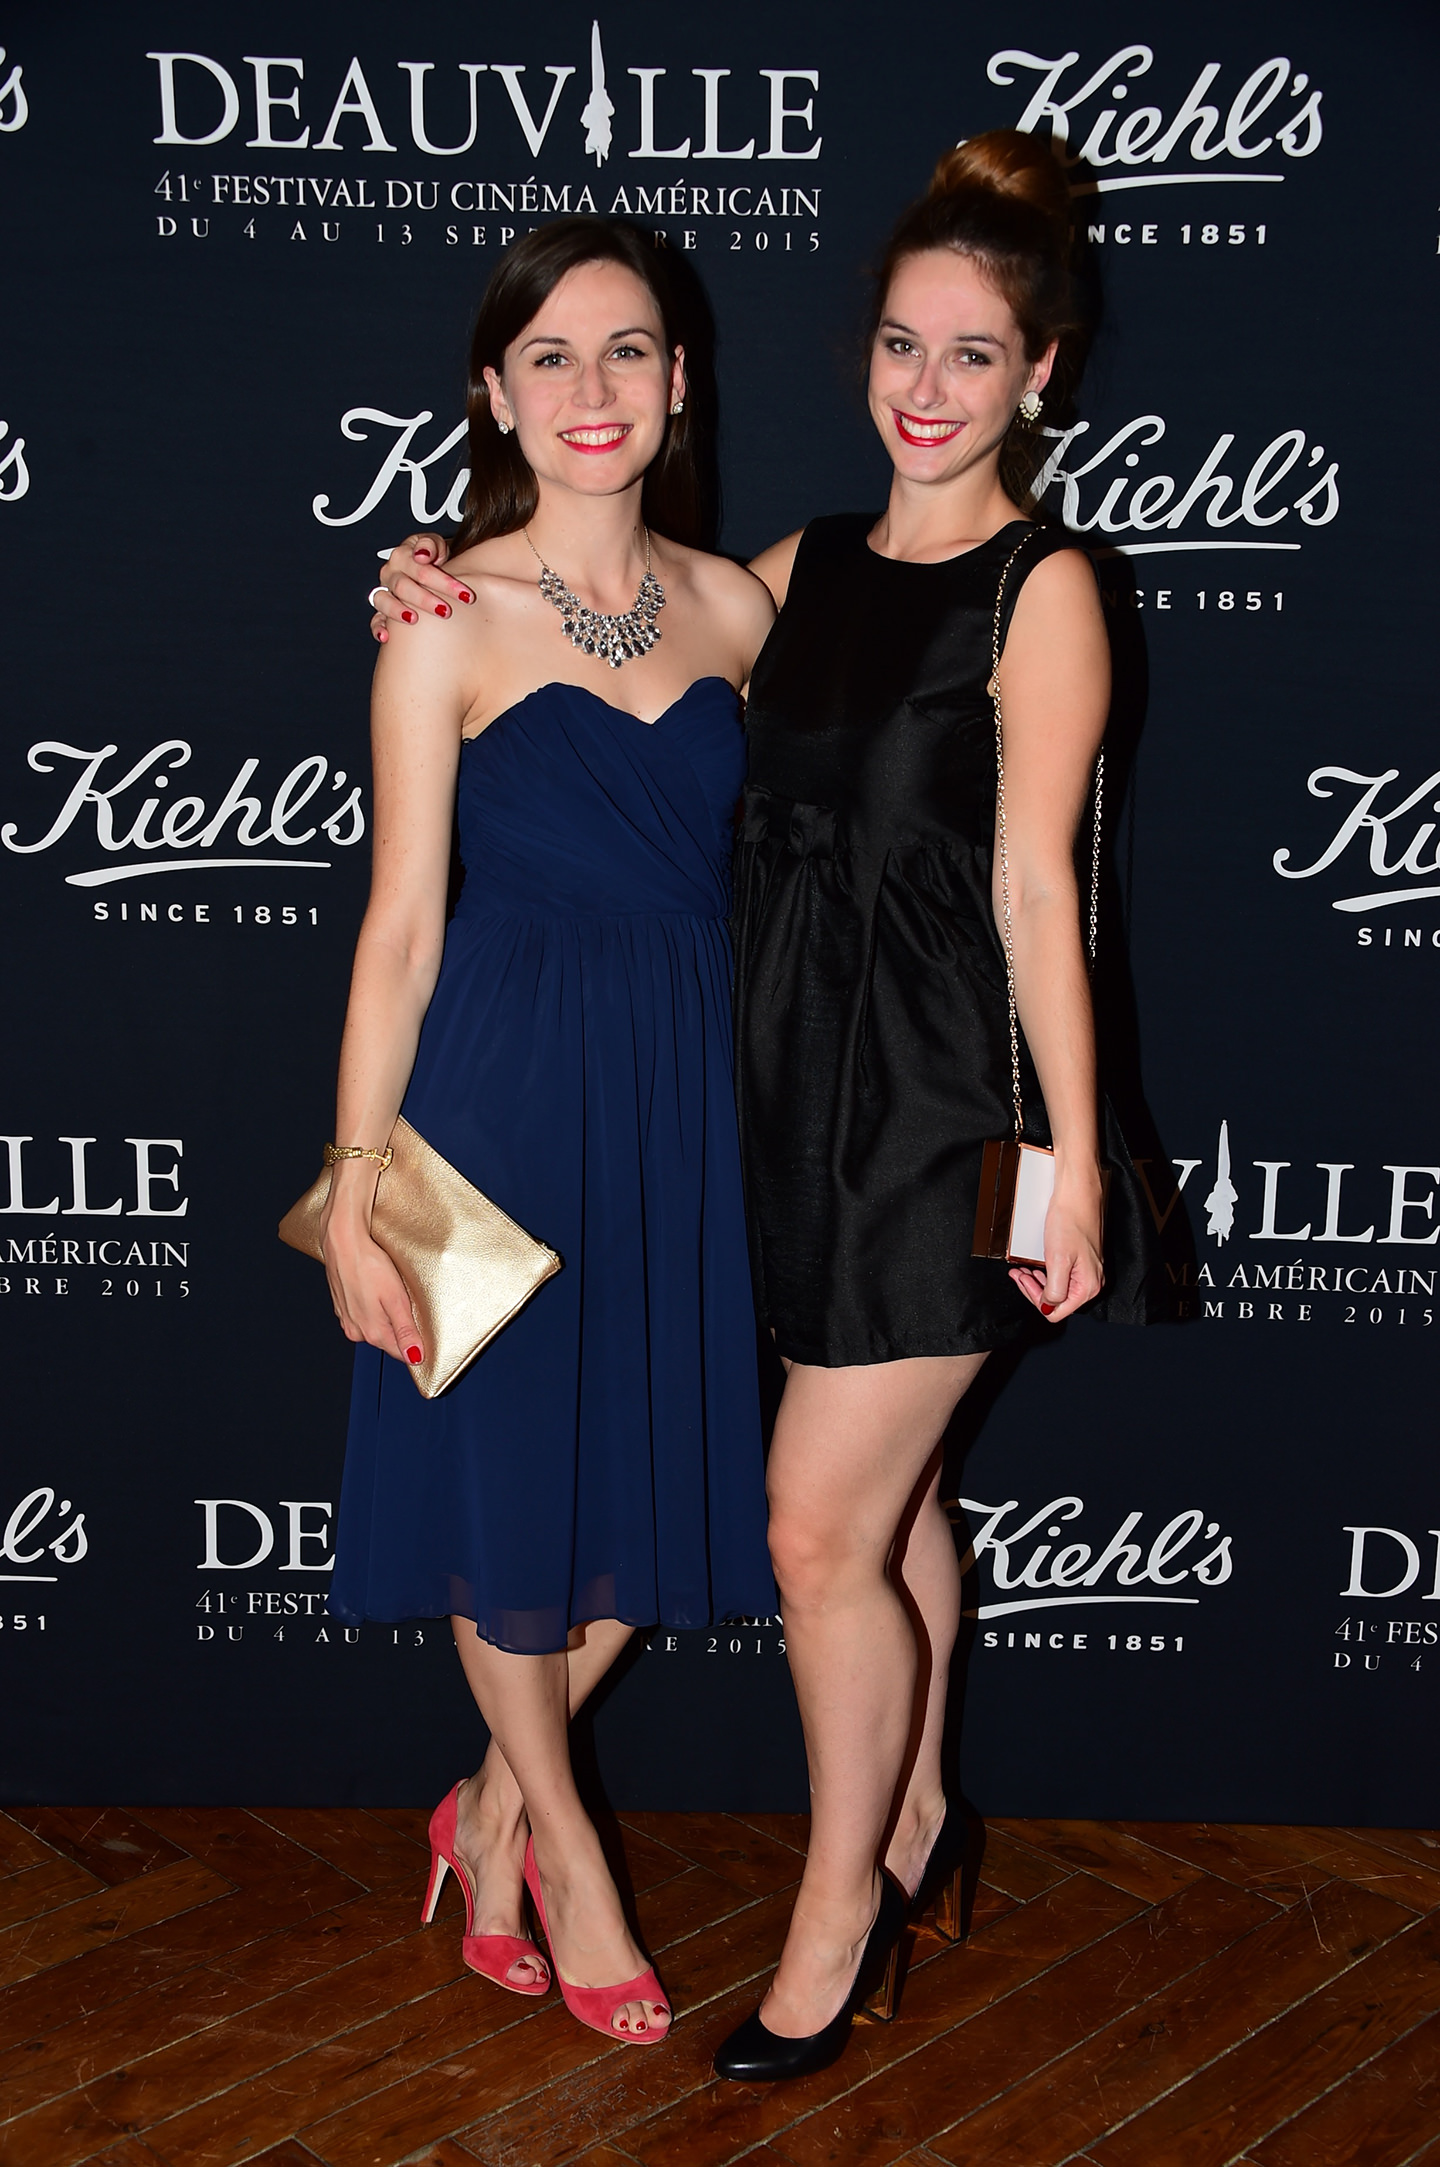 Blog-Mode-And-The-City-Lifestyle-Festival-Film-Américain-Deauville-Kiehl's001